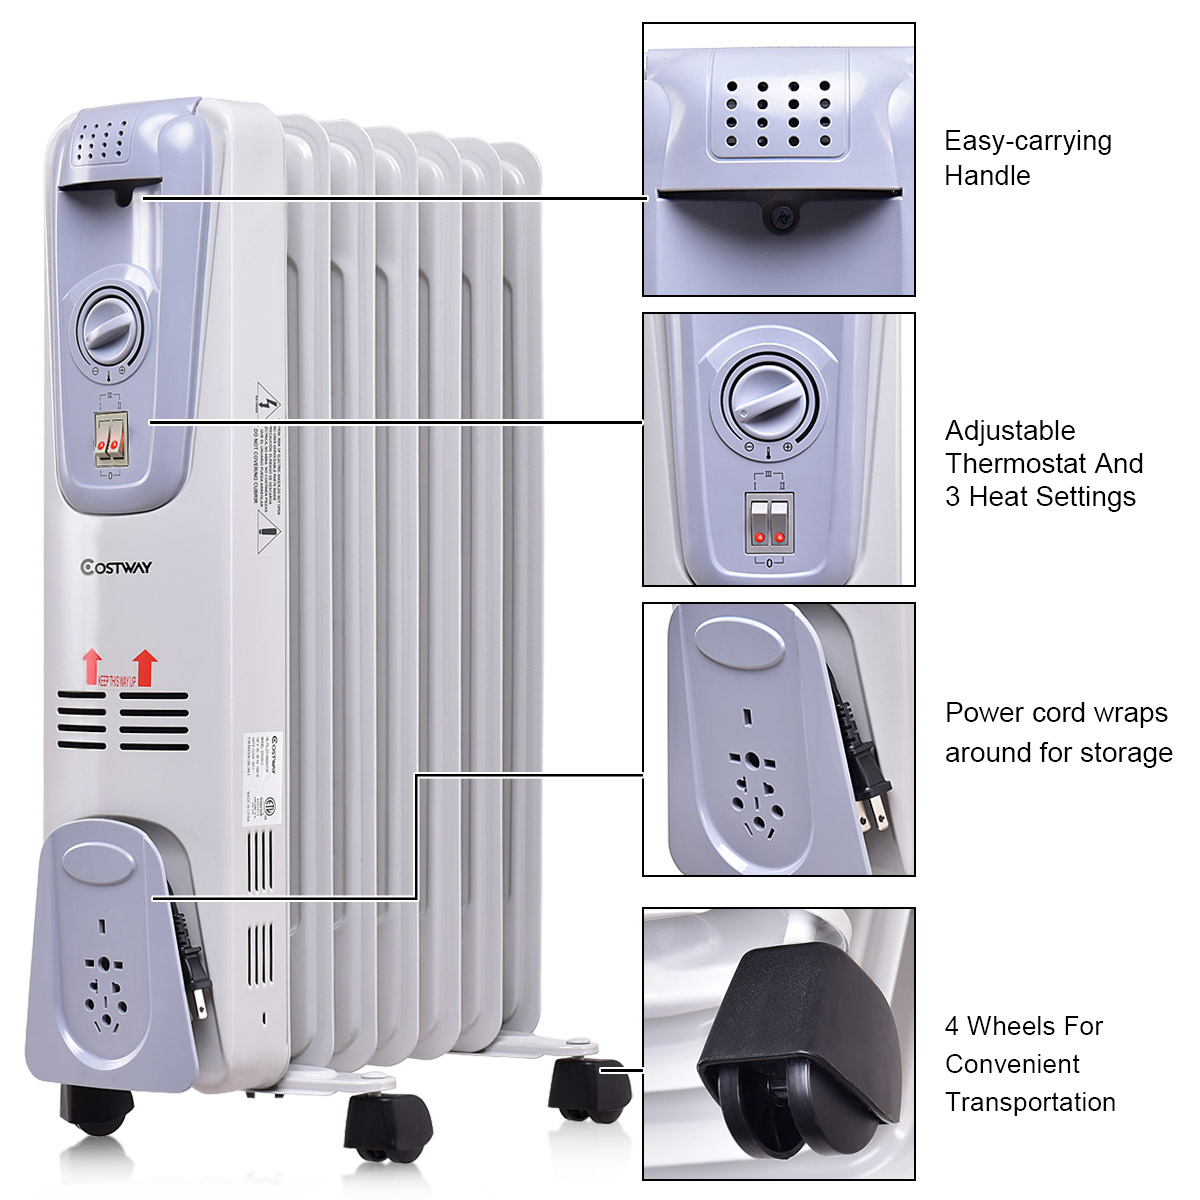 ee4994fd44c 1500W Electric Oil Filled Radiator Space Heater Thermostat - Walmart.com